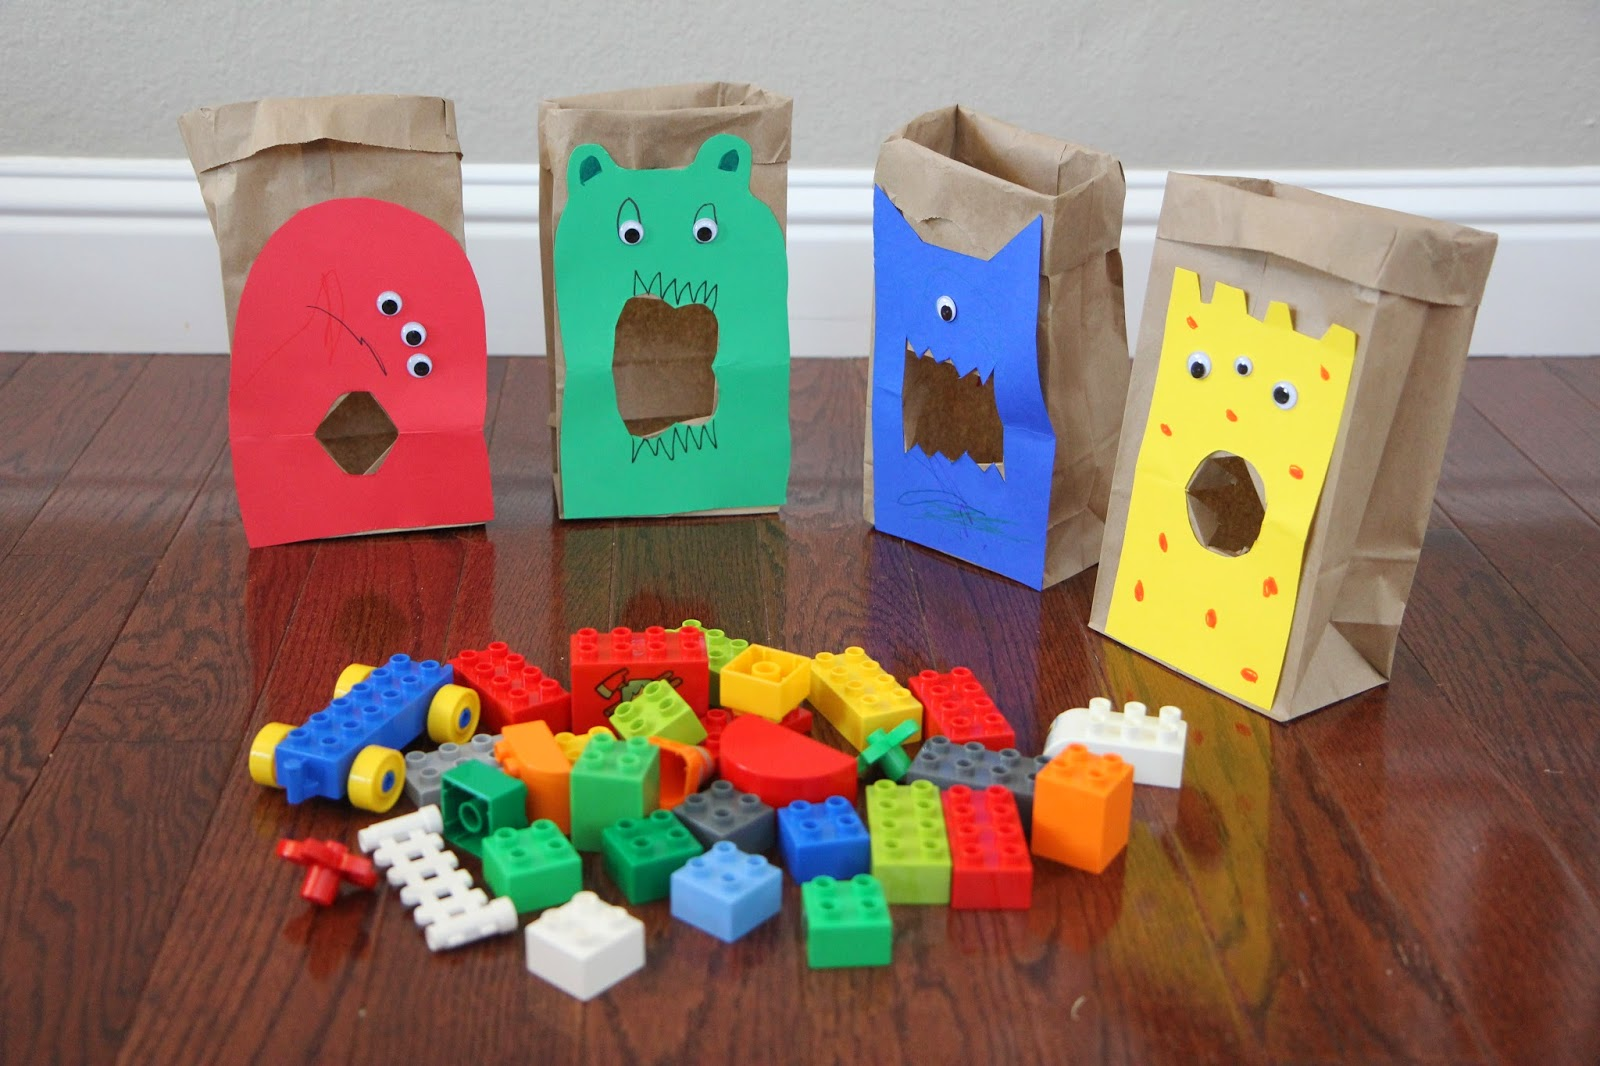 5 Ways Preschoolers Can Learn With Lego Modern Speechie